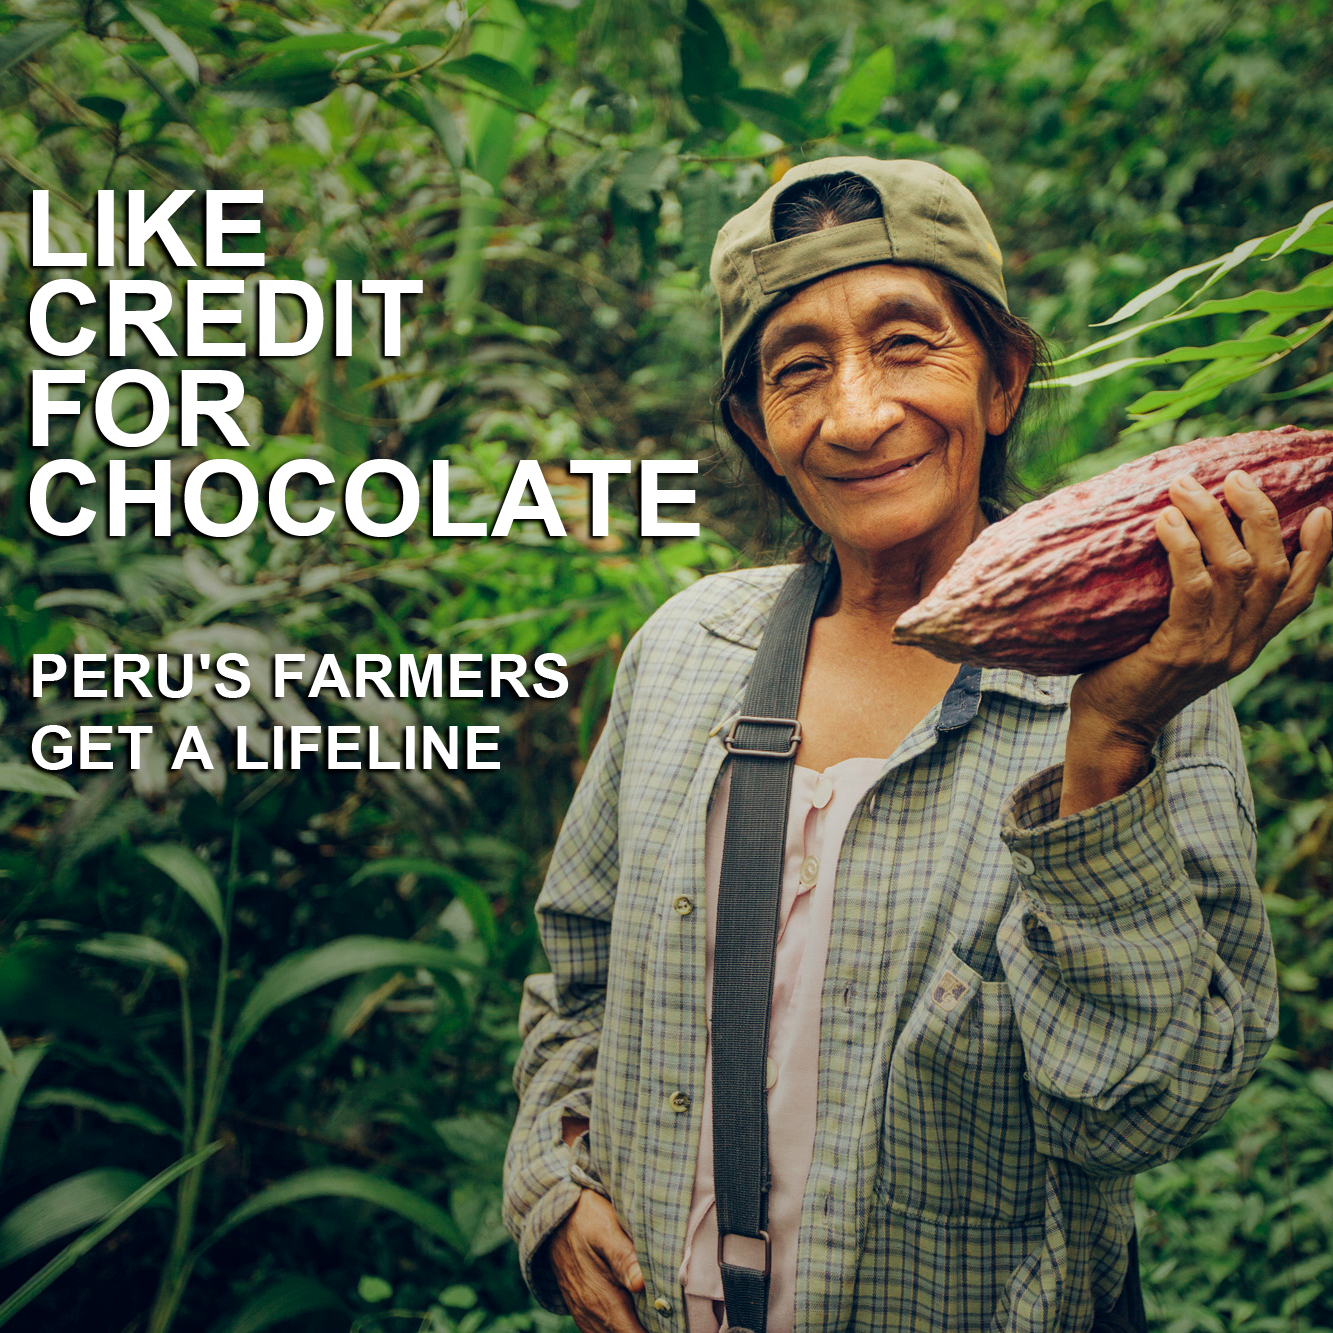 Like Credit For Chocolate: Peru's Farmers Get a Lifeline - View Photo Story at Exposure